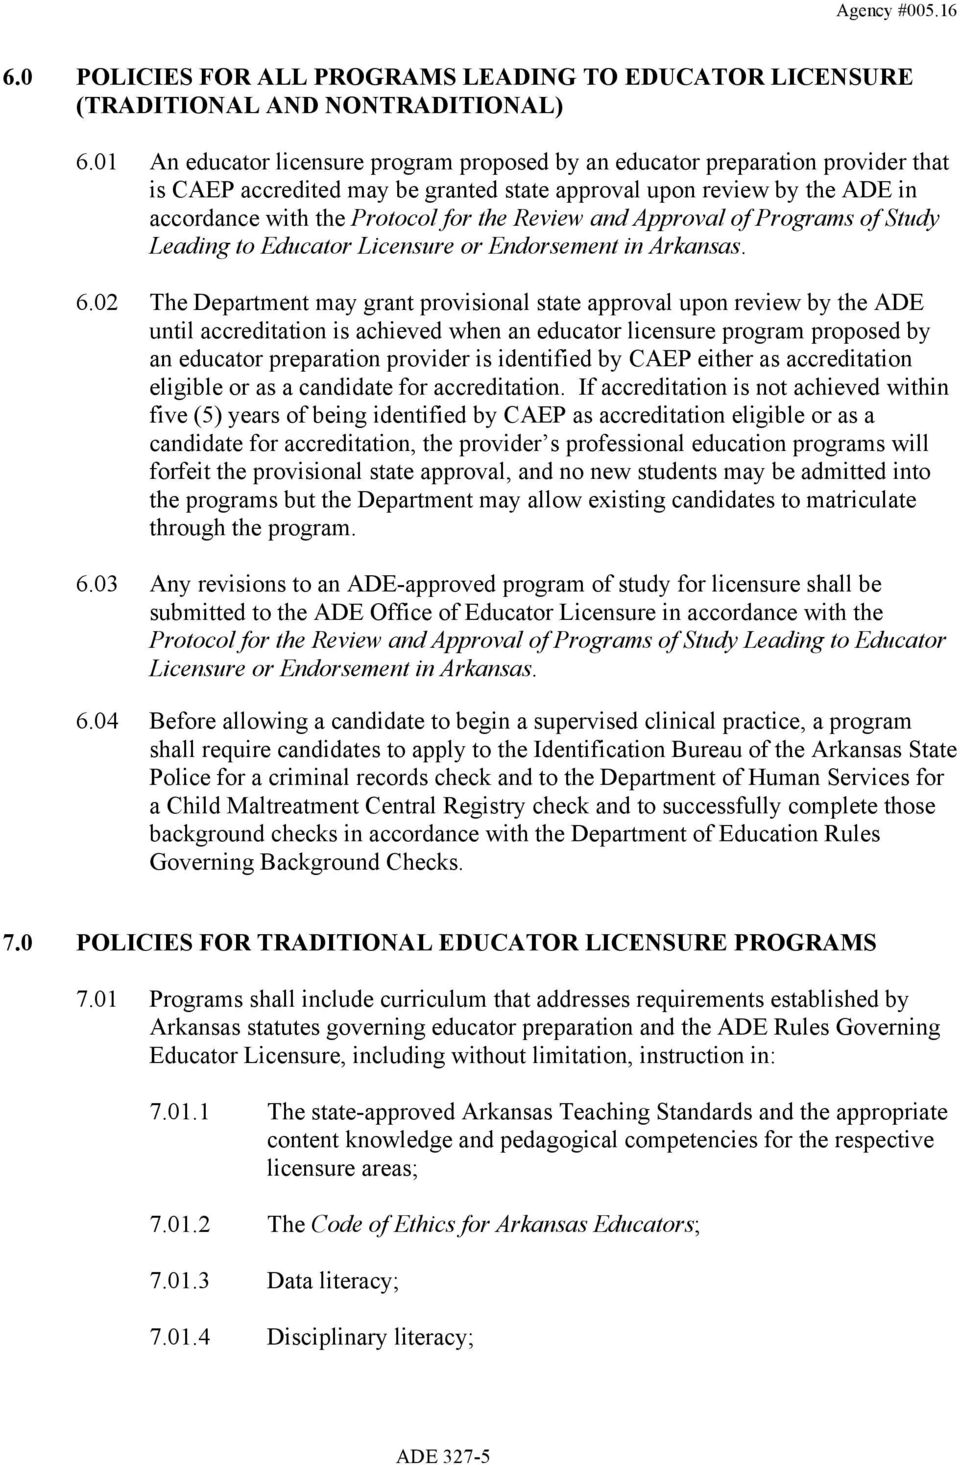 Review and Approval of Programs of Study Leading to Educator Licensure or Endorsement in Arkansas. 6.